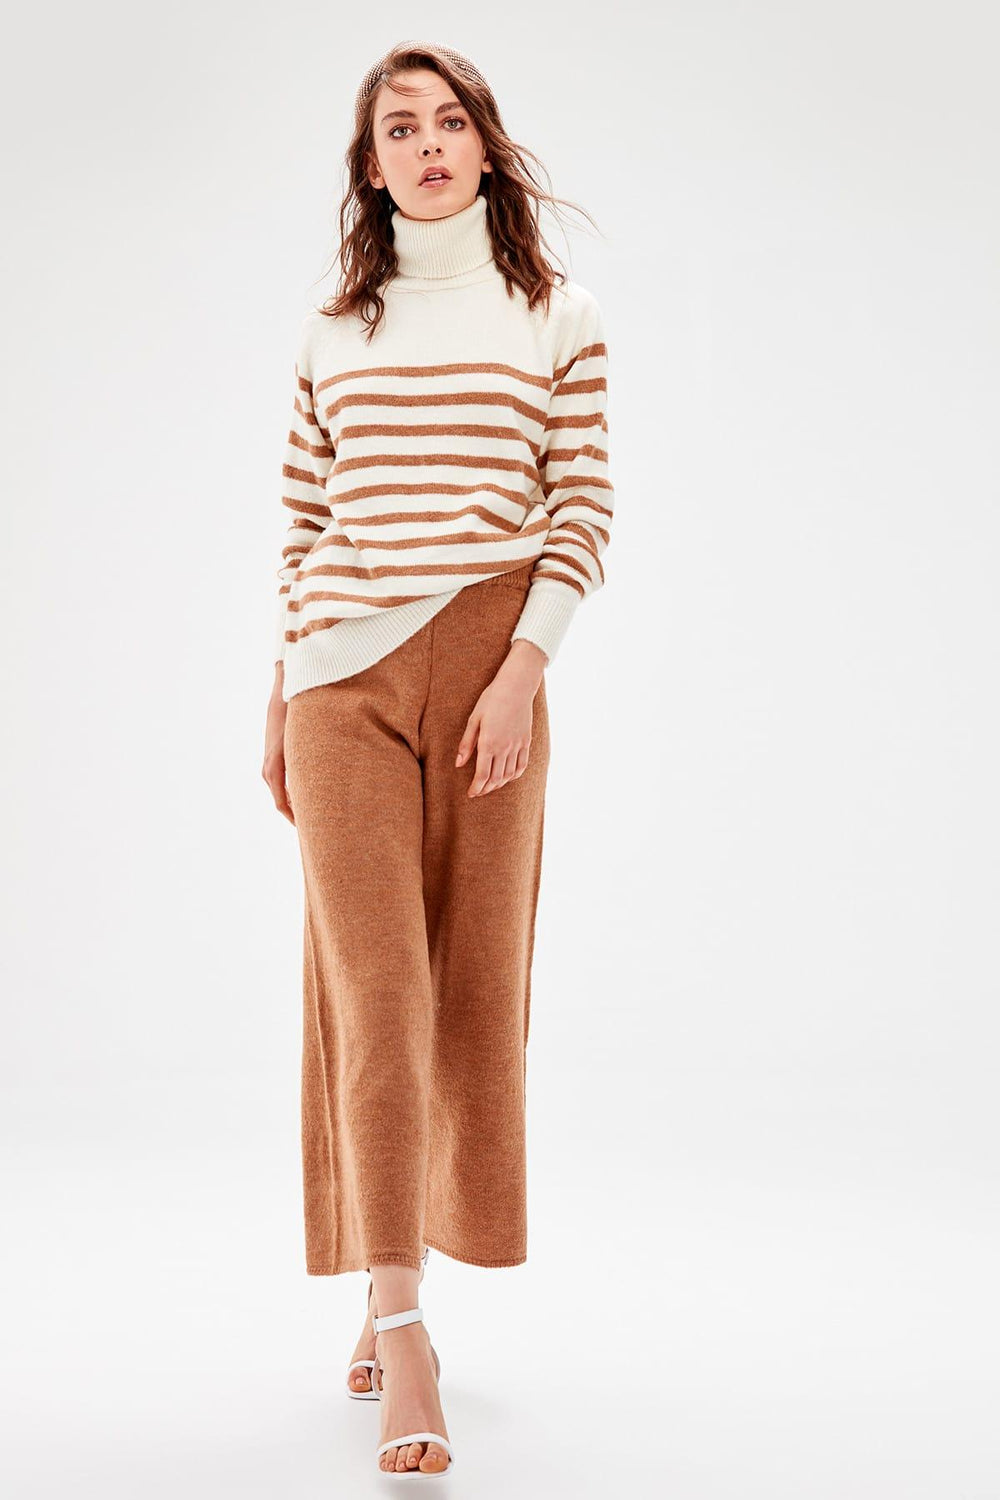 Miss Zut Miss Zut Petrol Flare Pants Miss Zut &CO